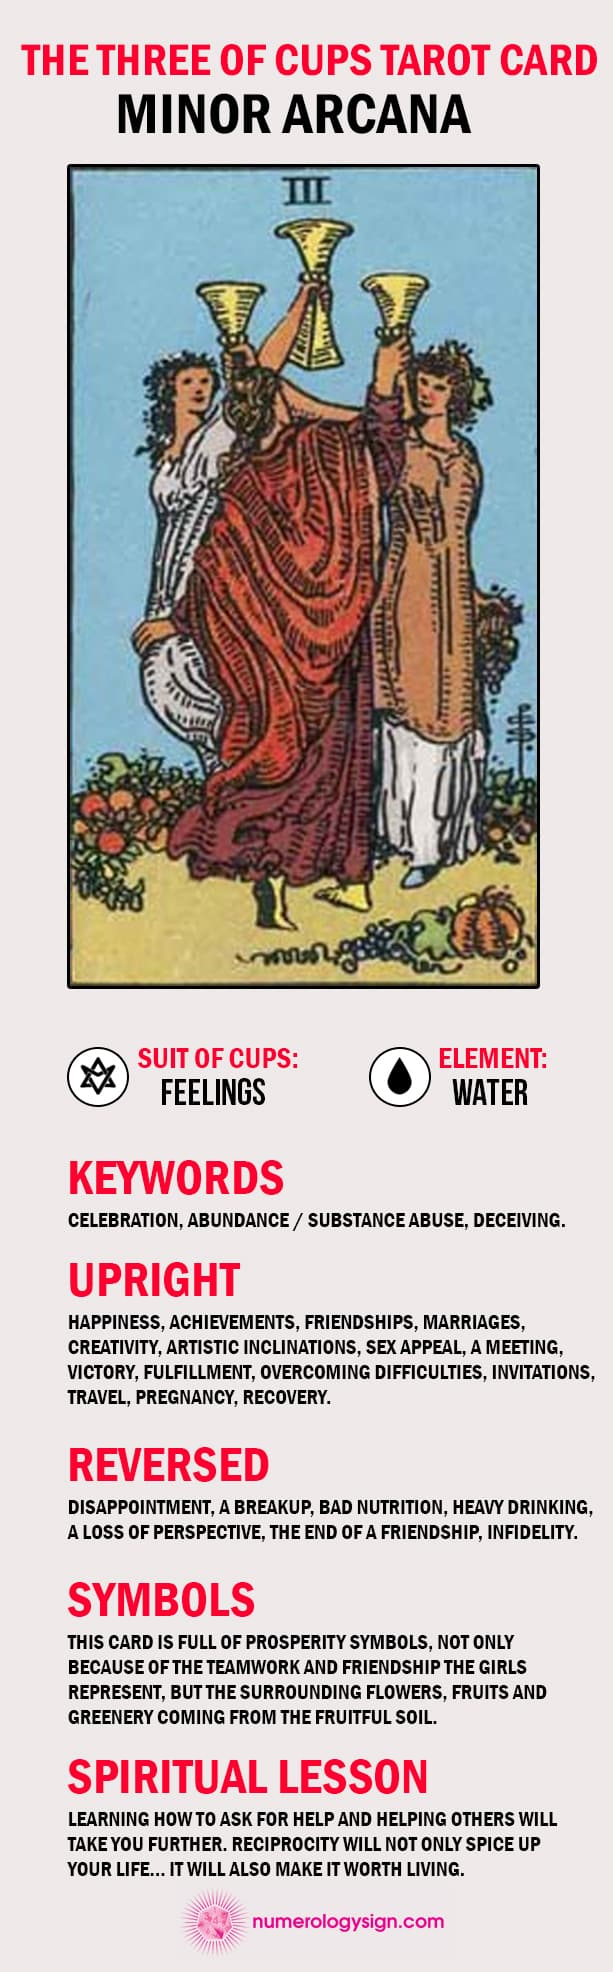 The Three of Cups Tarot Card Meaning Infographic - Minor Arcana